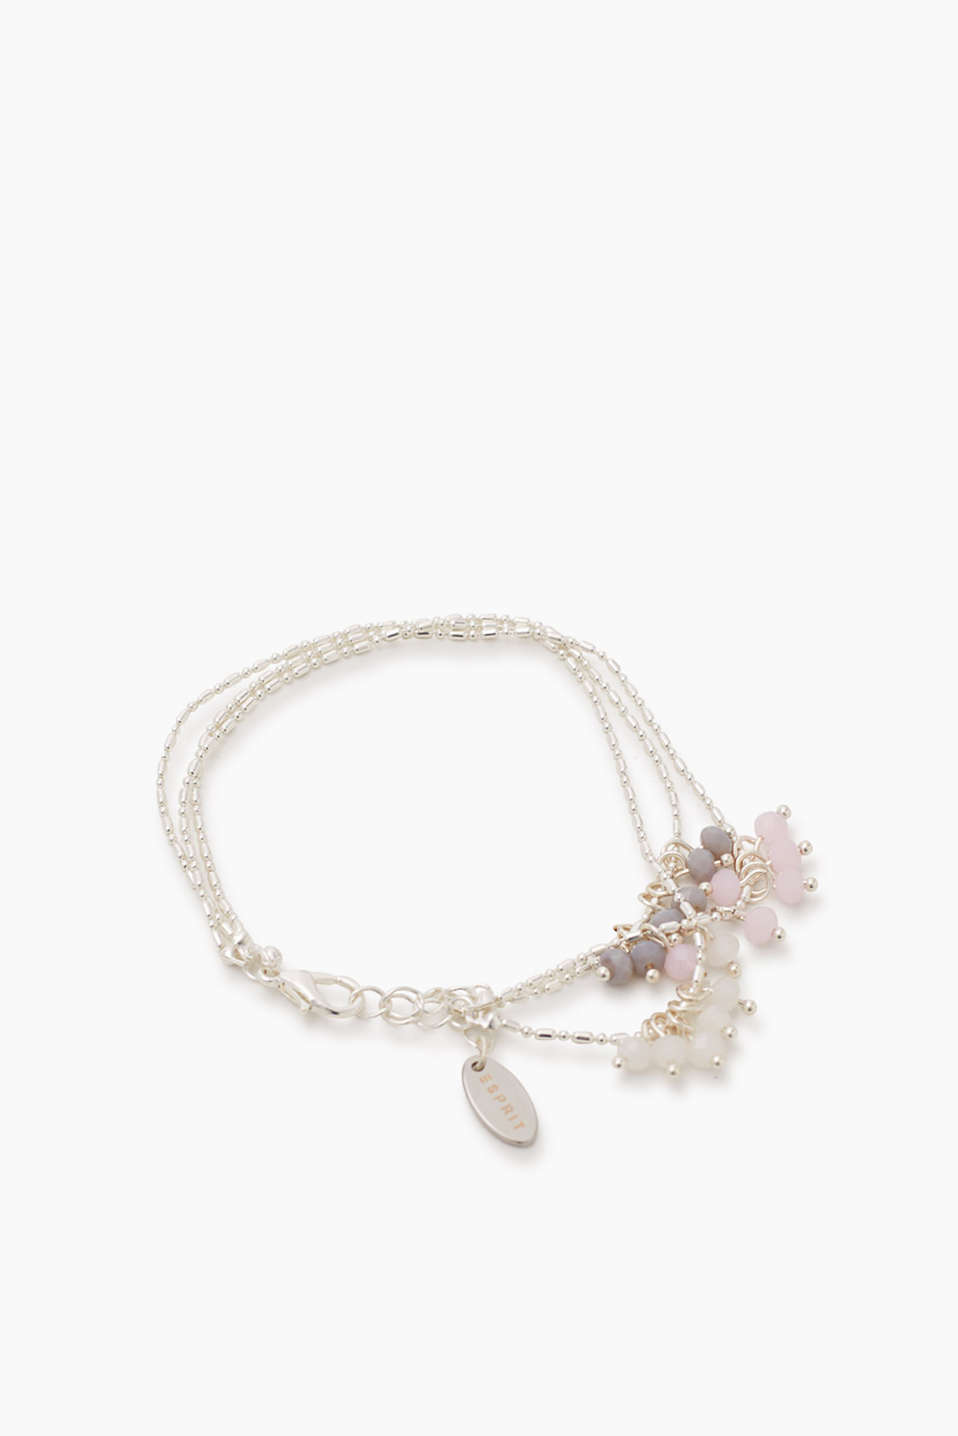 Three filigree bracelets with facet-cut beads in delicate milky shades